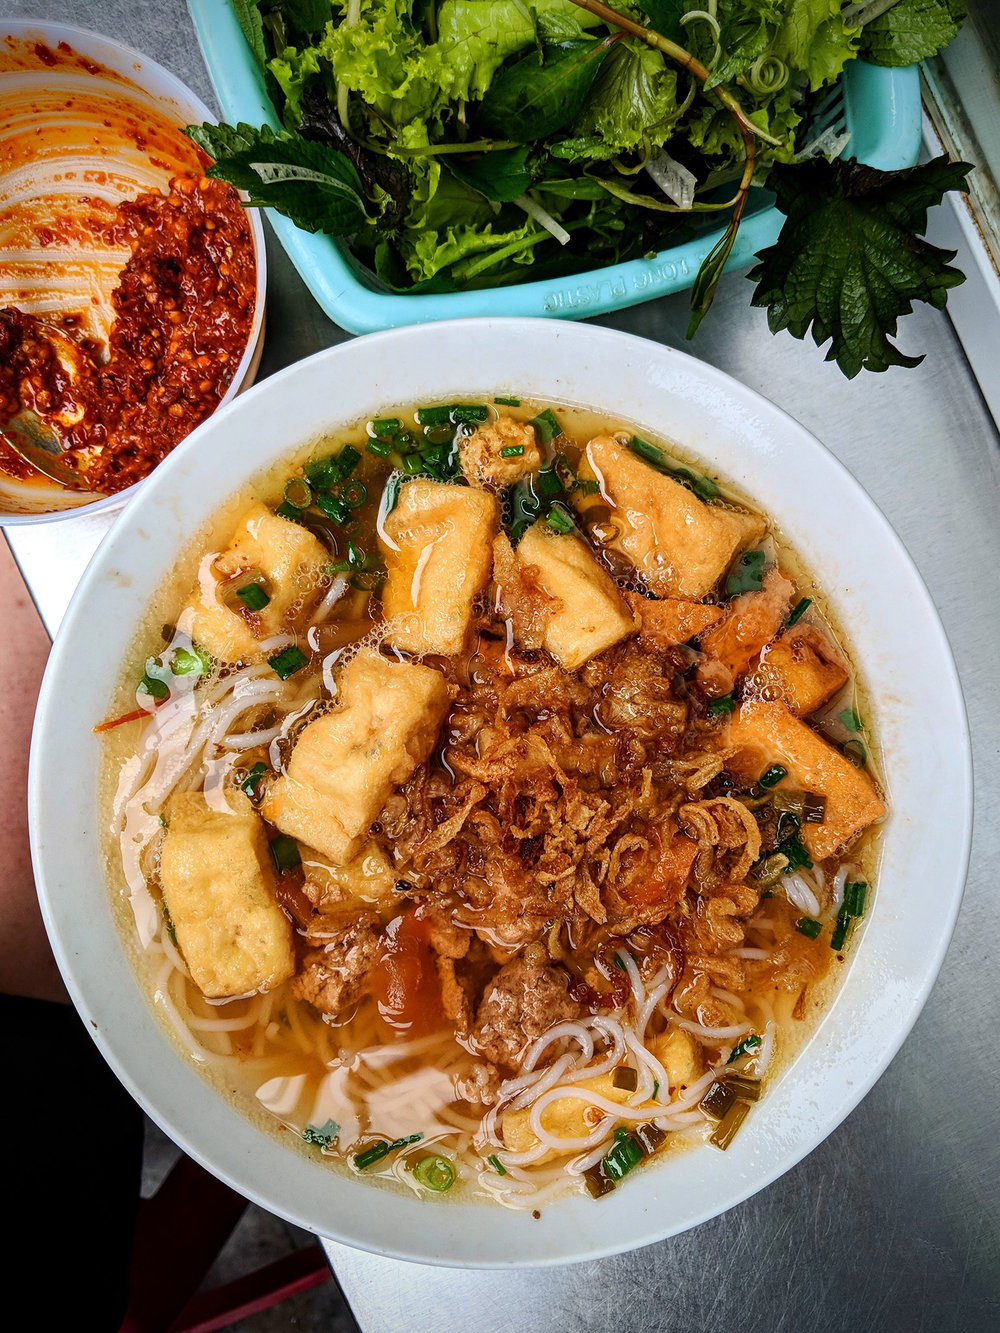 Delicious Bún riêu, a noodle dish with tomato-crab paste broth, at Bún Riêu Hàng Bạc